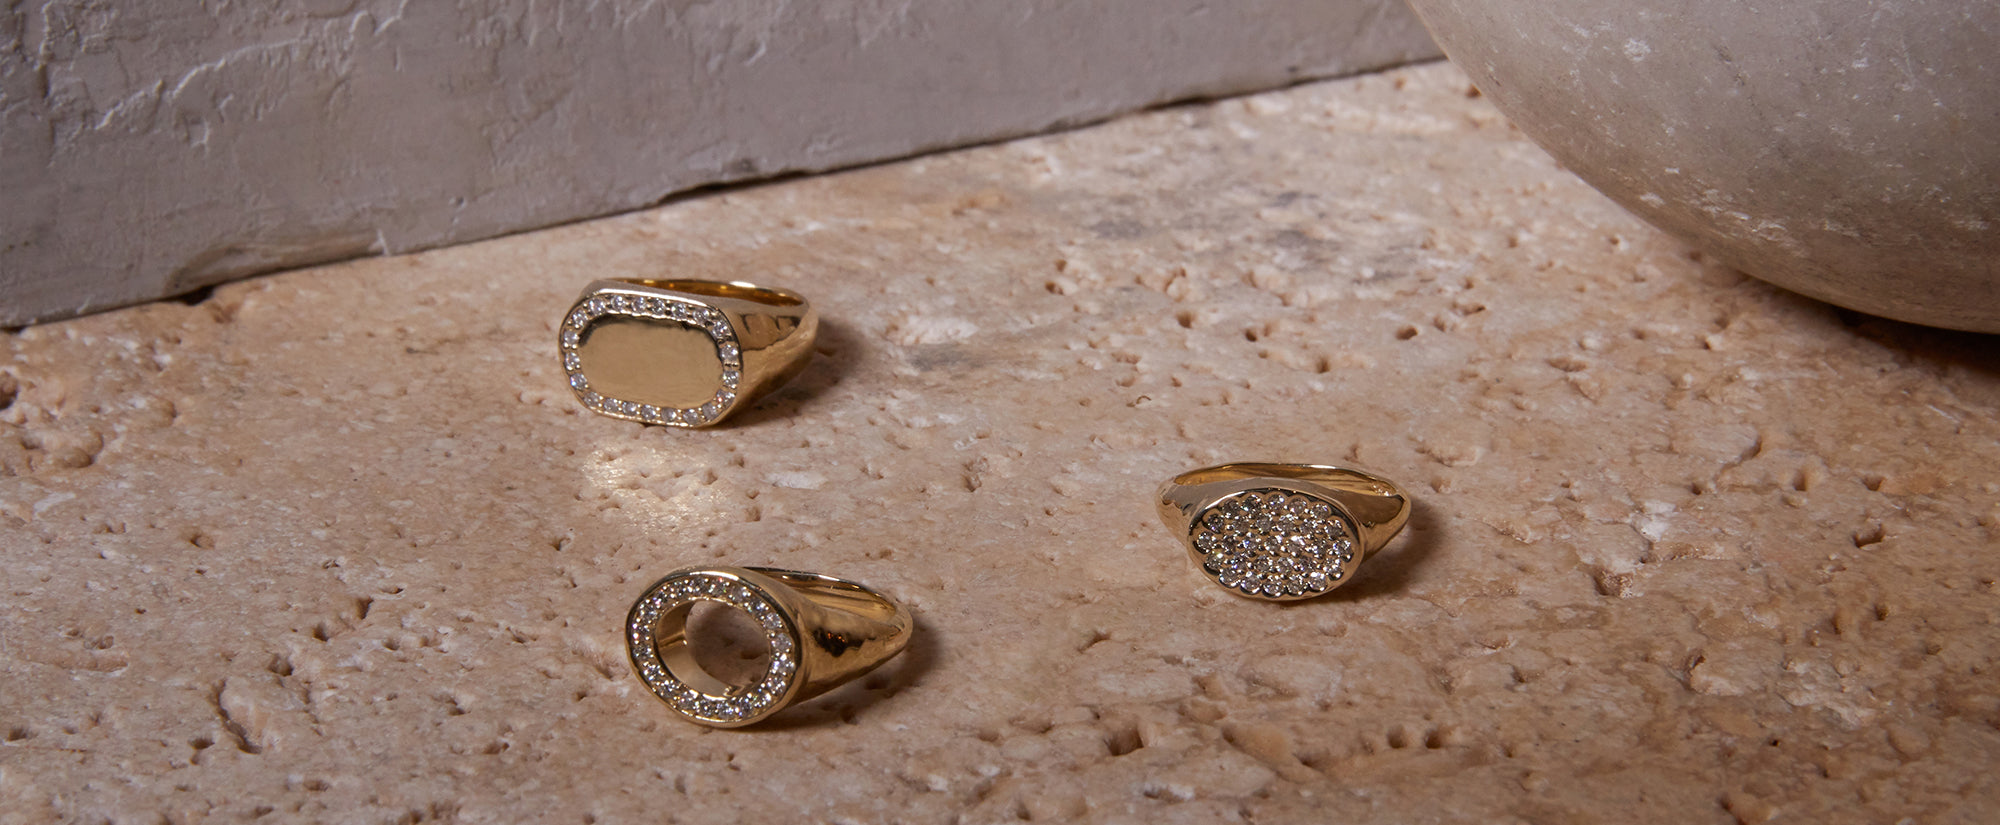 gold diamond signet rings family heirlooms